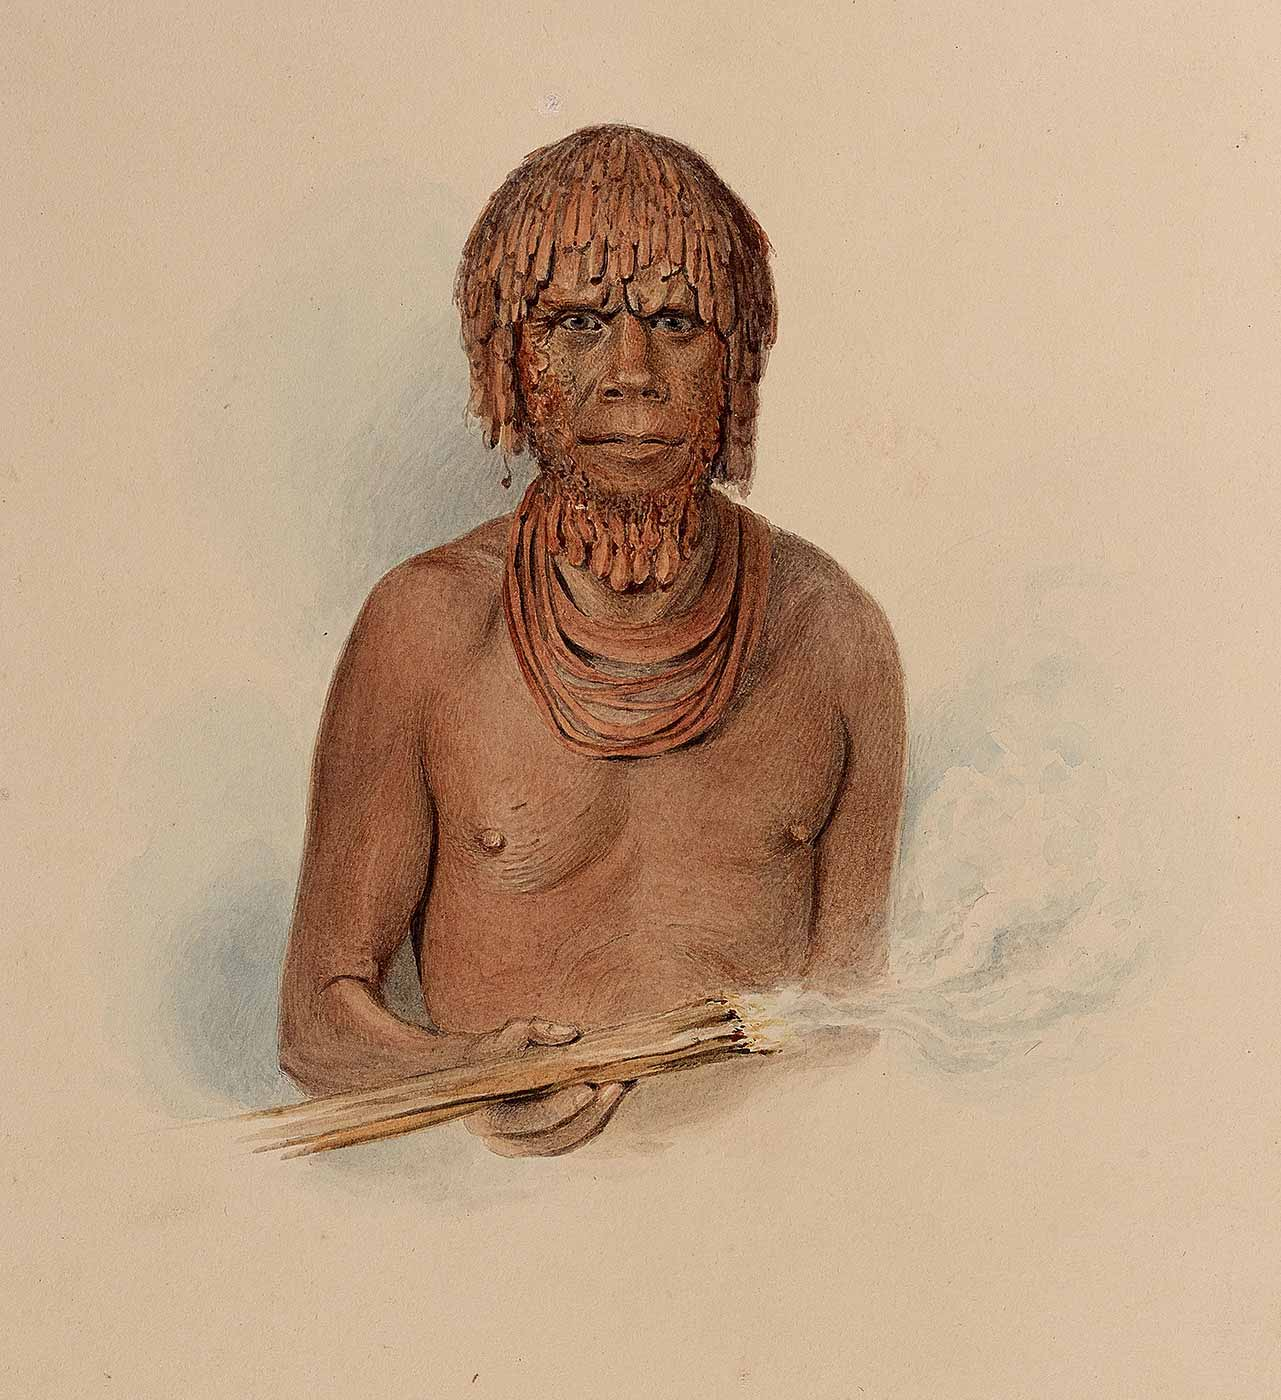 A watercolour depicting Mannalargenna, a leader of the Tasmanian Aboriginal people from Oyster Bay. He has long hair and beard, and is wearing necklaces and holding a fire stick. - click to view larger image